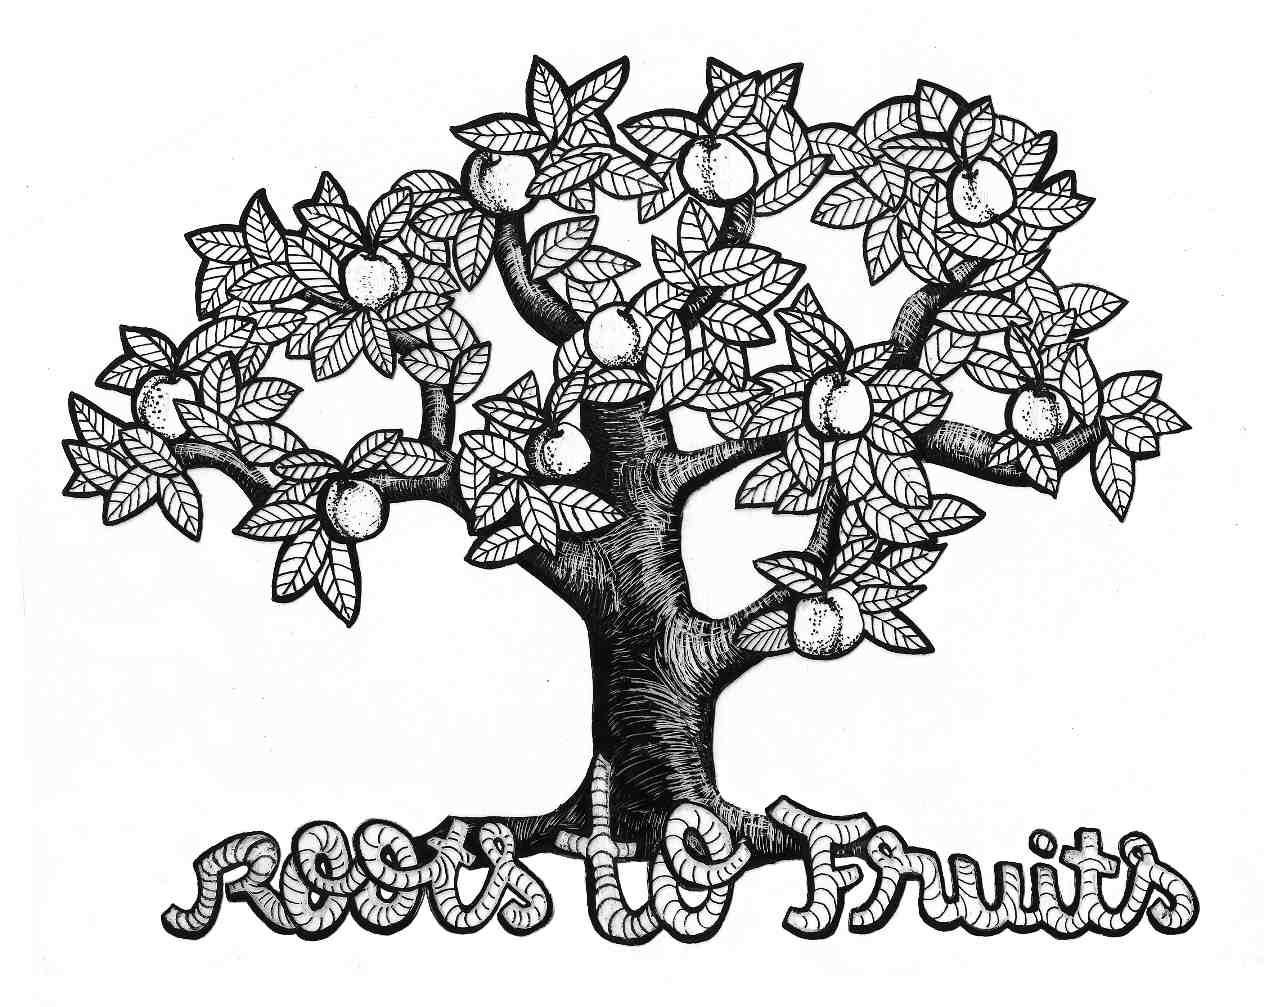 Roots To Fruits Indybay